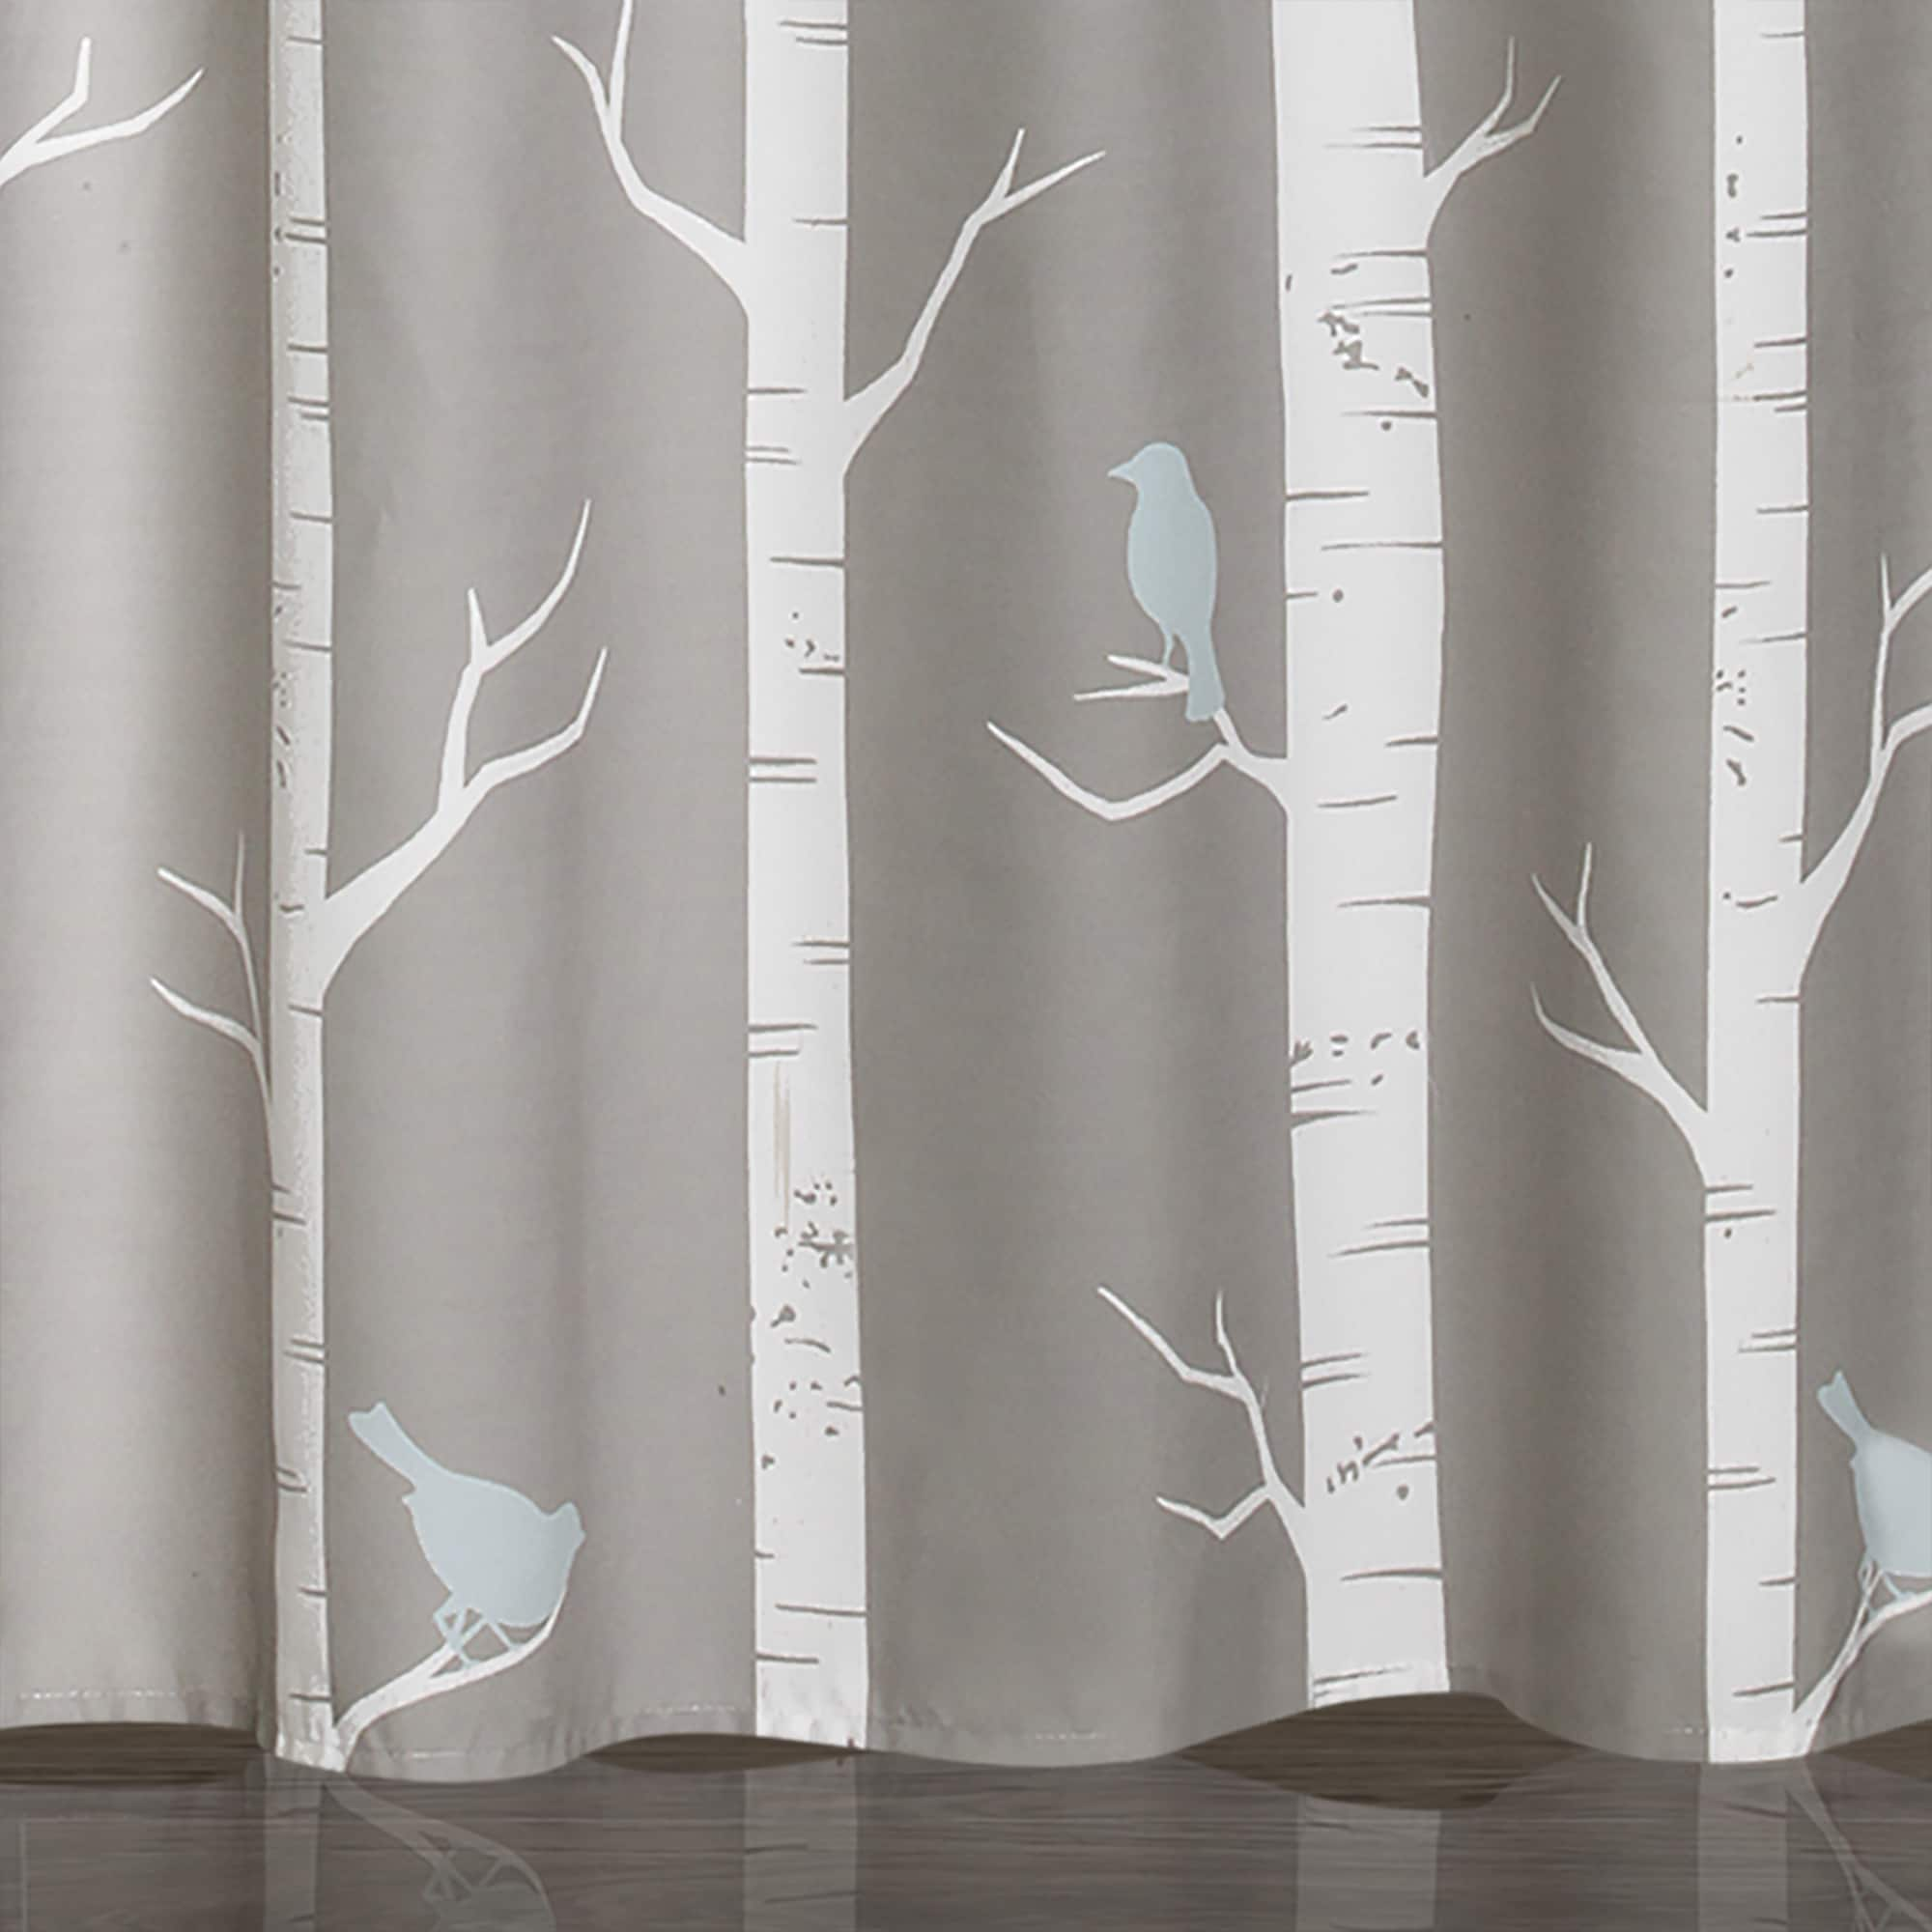 mesmerizing shower grey bird ibiza fabric outstanding curtains furniture curtain